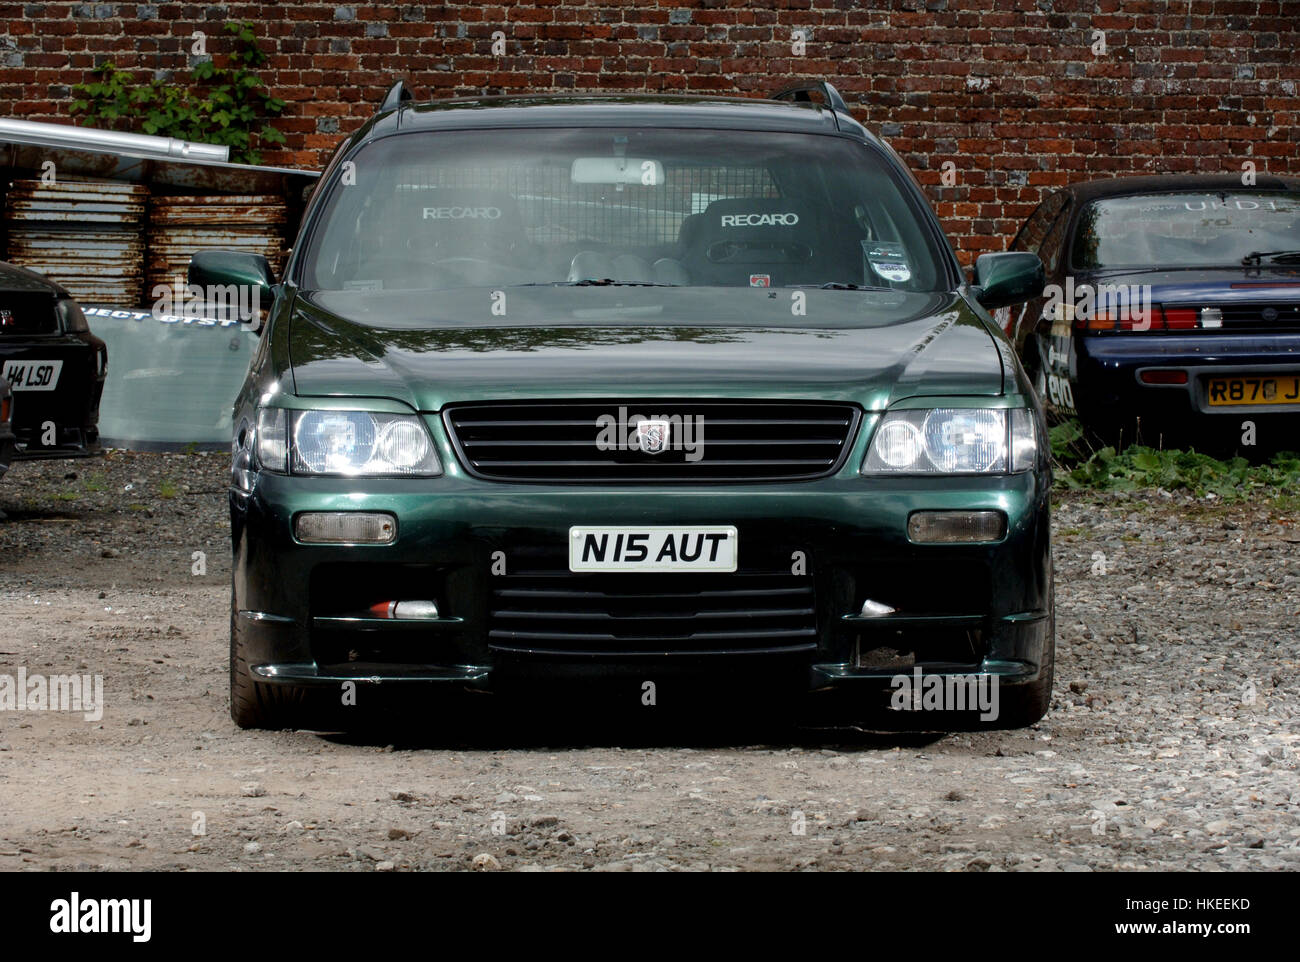 Nissan Stagea, High Performance 4 Wheel Drive Estate Car Which Uses The  Skyline Drive Train